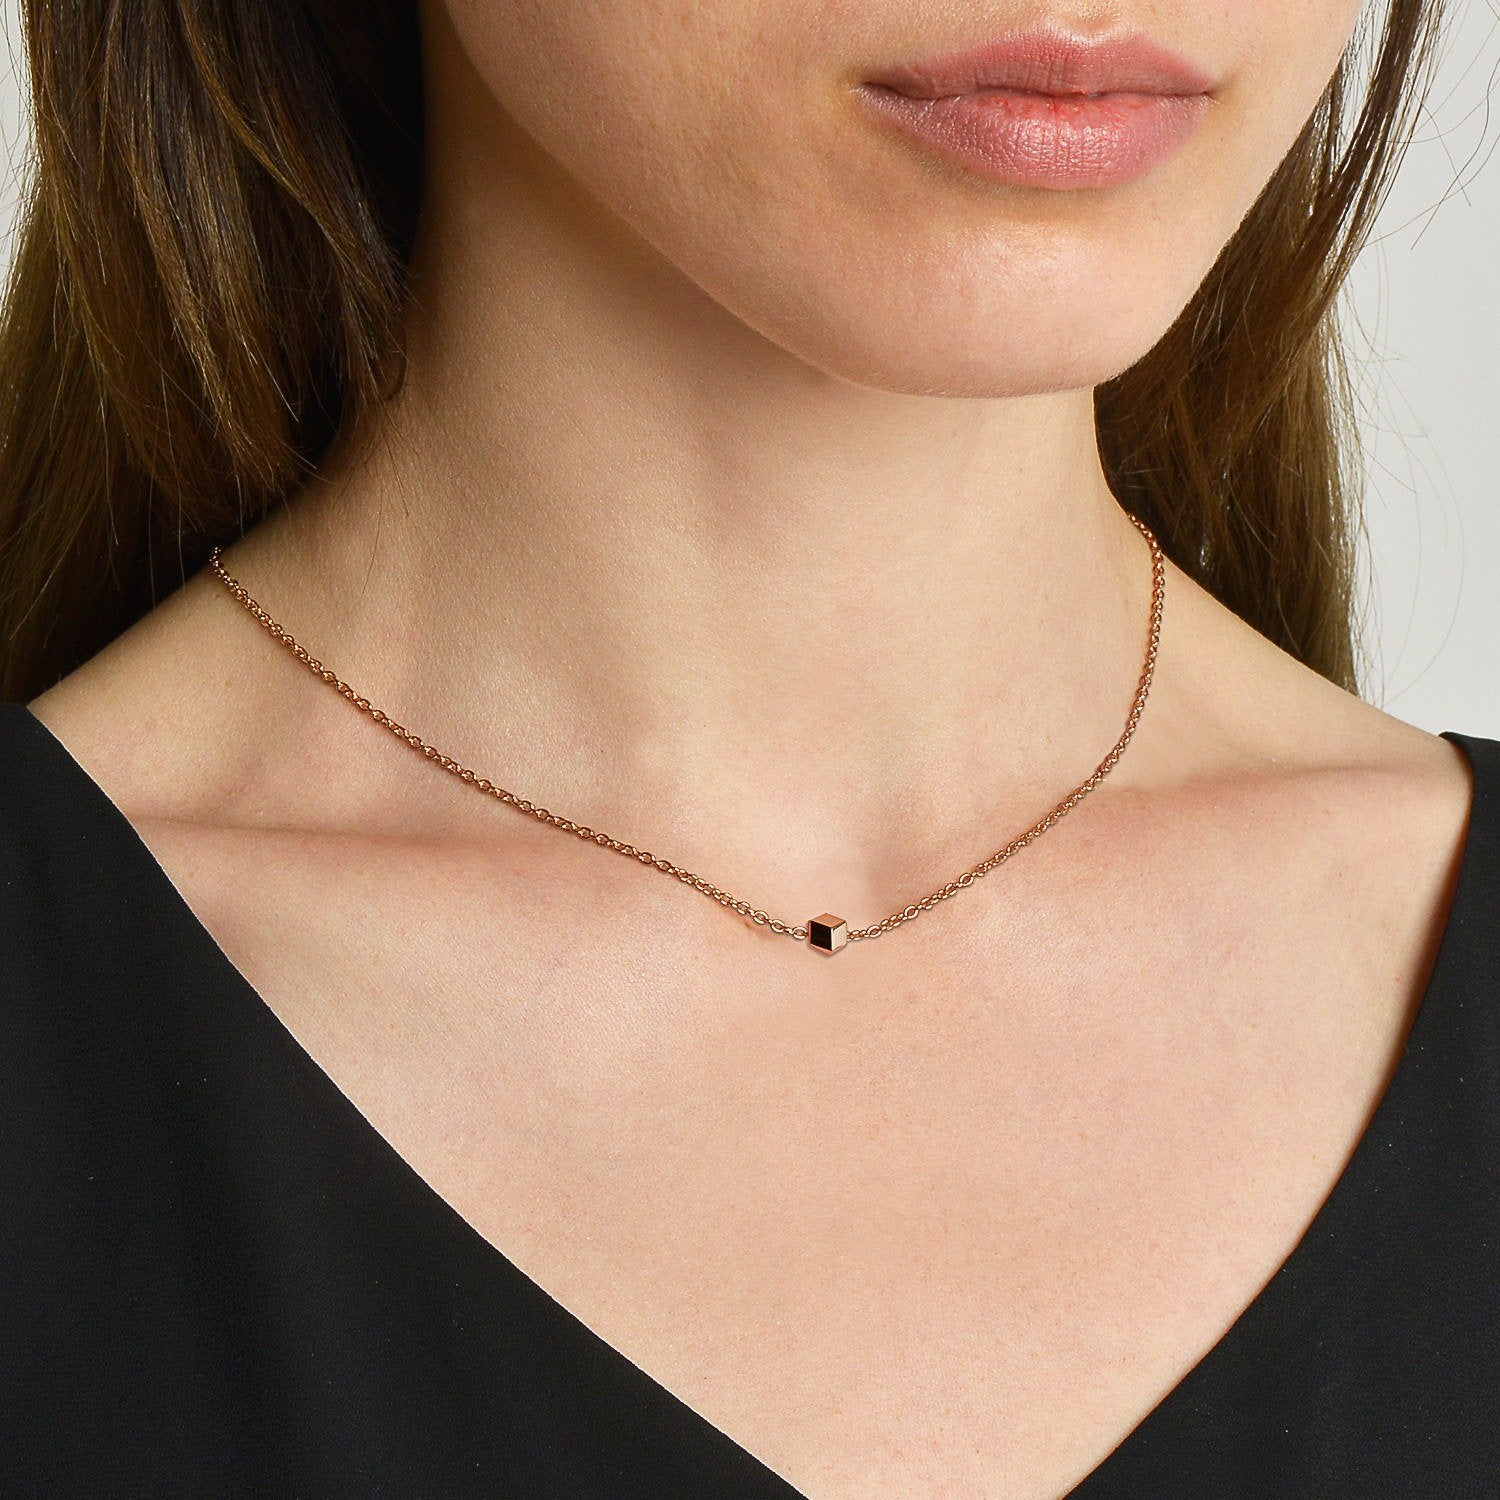 18kt Rose Gold Necklace - Paolo Costagli - 2